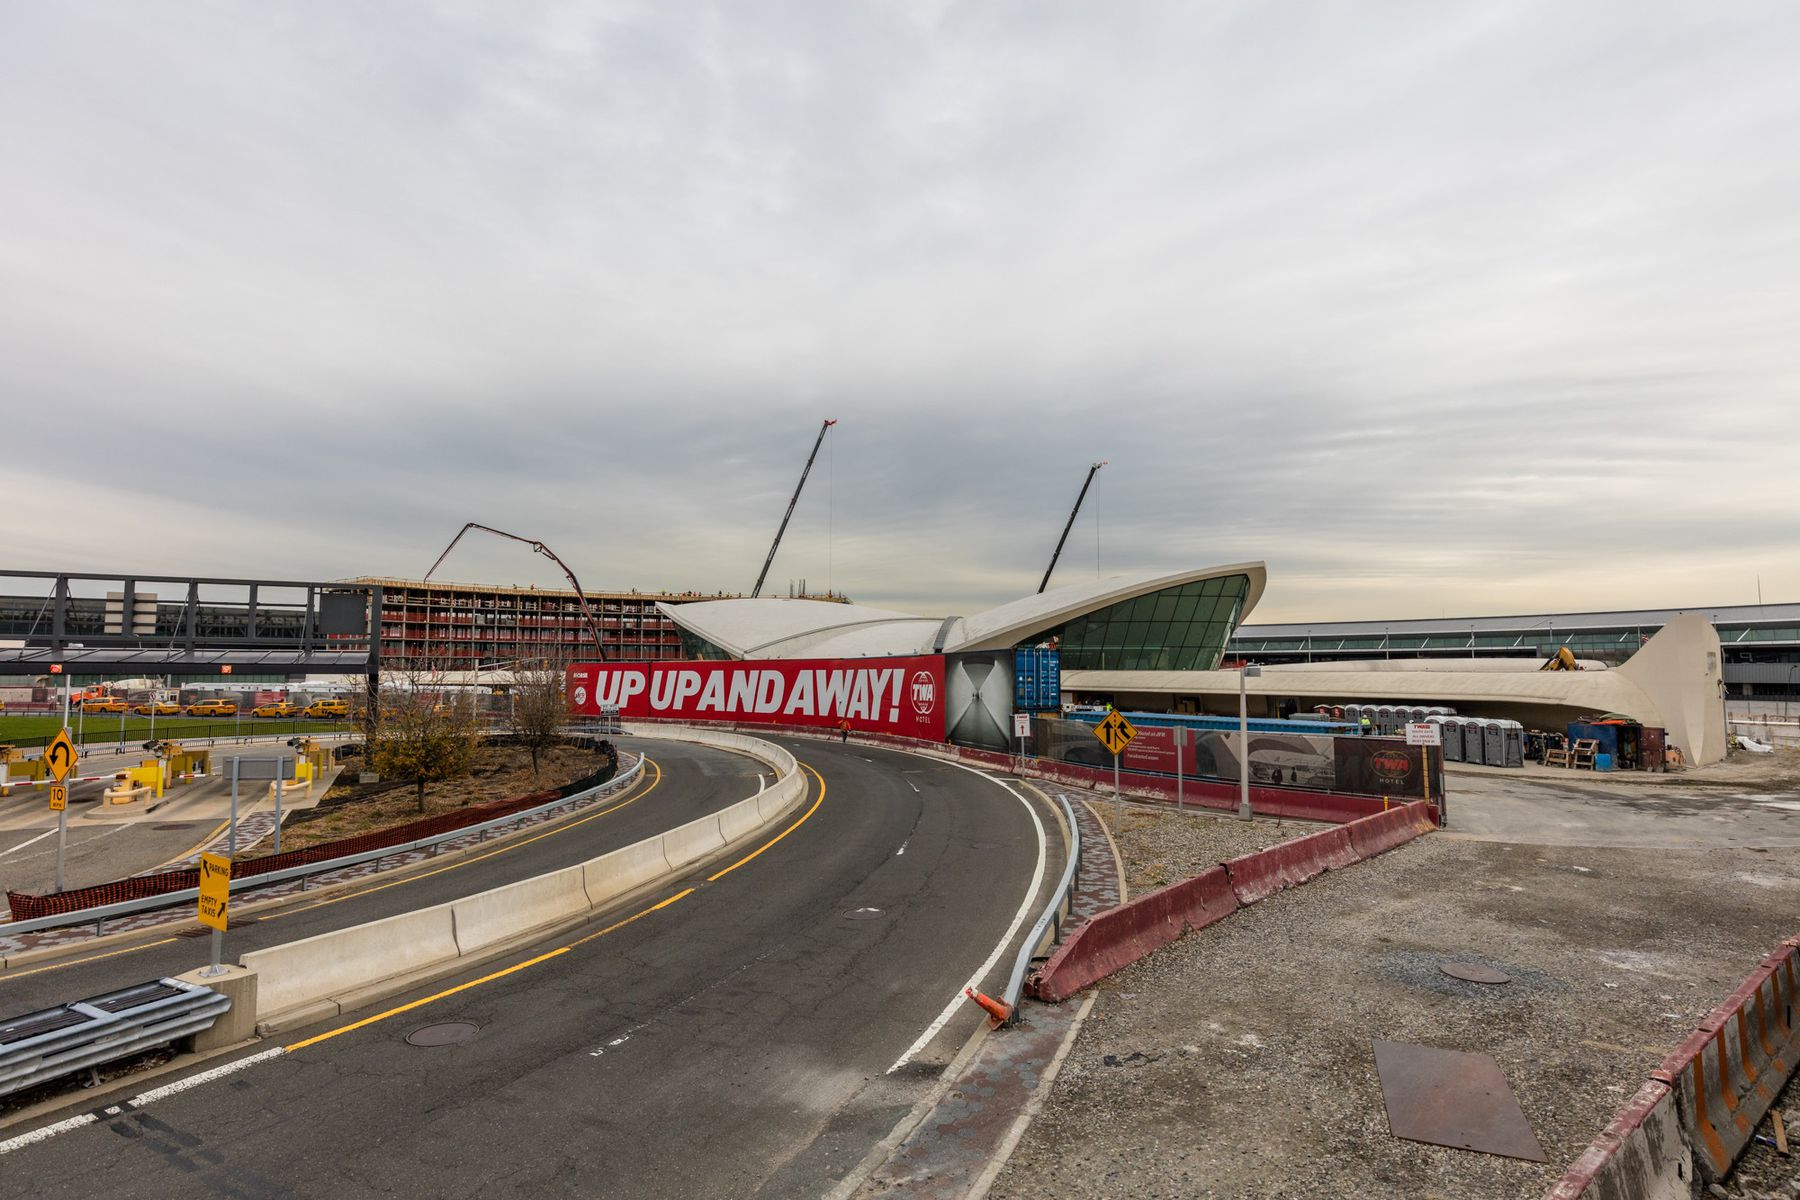 The Vintage Themed TWA Hotel Tops Out Next To The Eero Saarinen-Designed TWA Flight Center At JFK International Airport